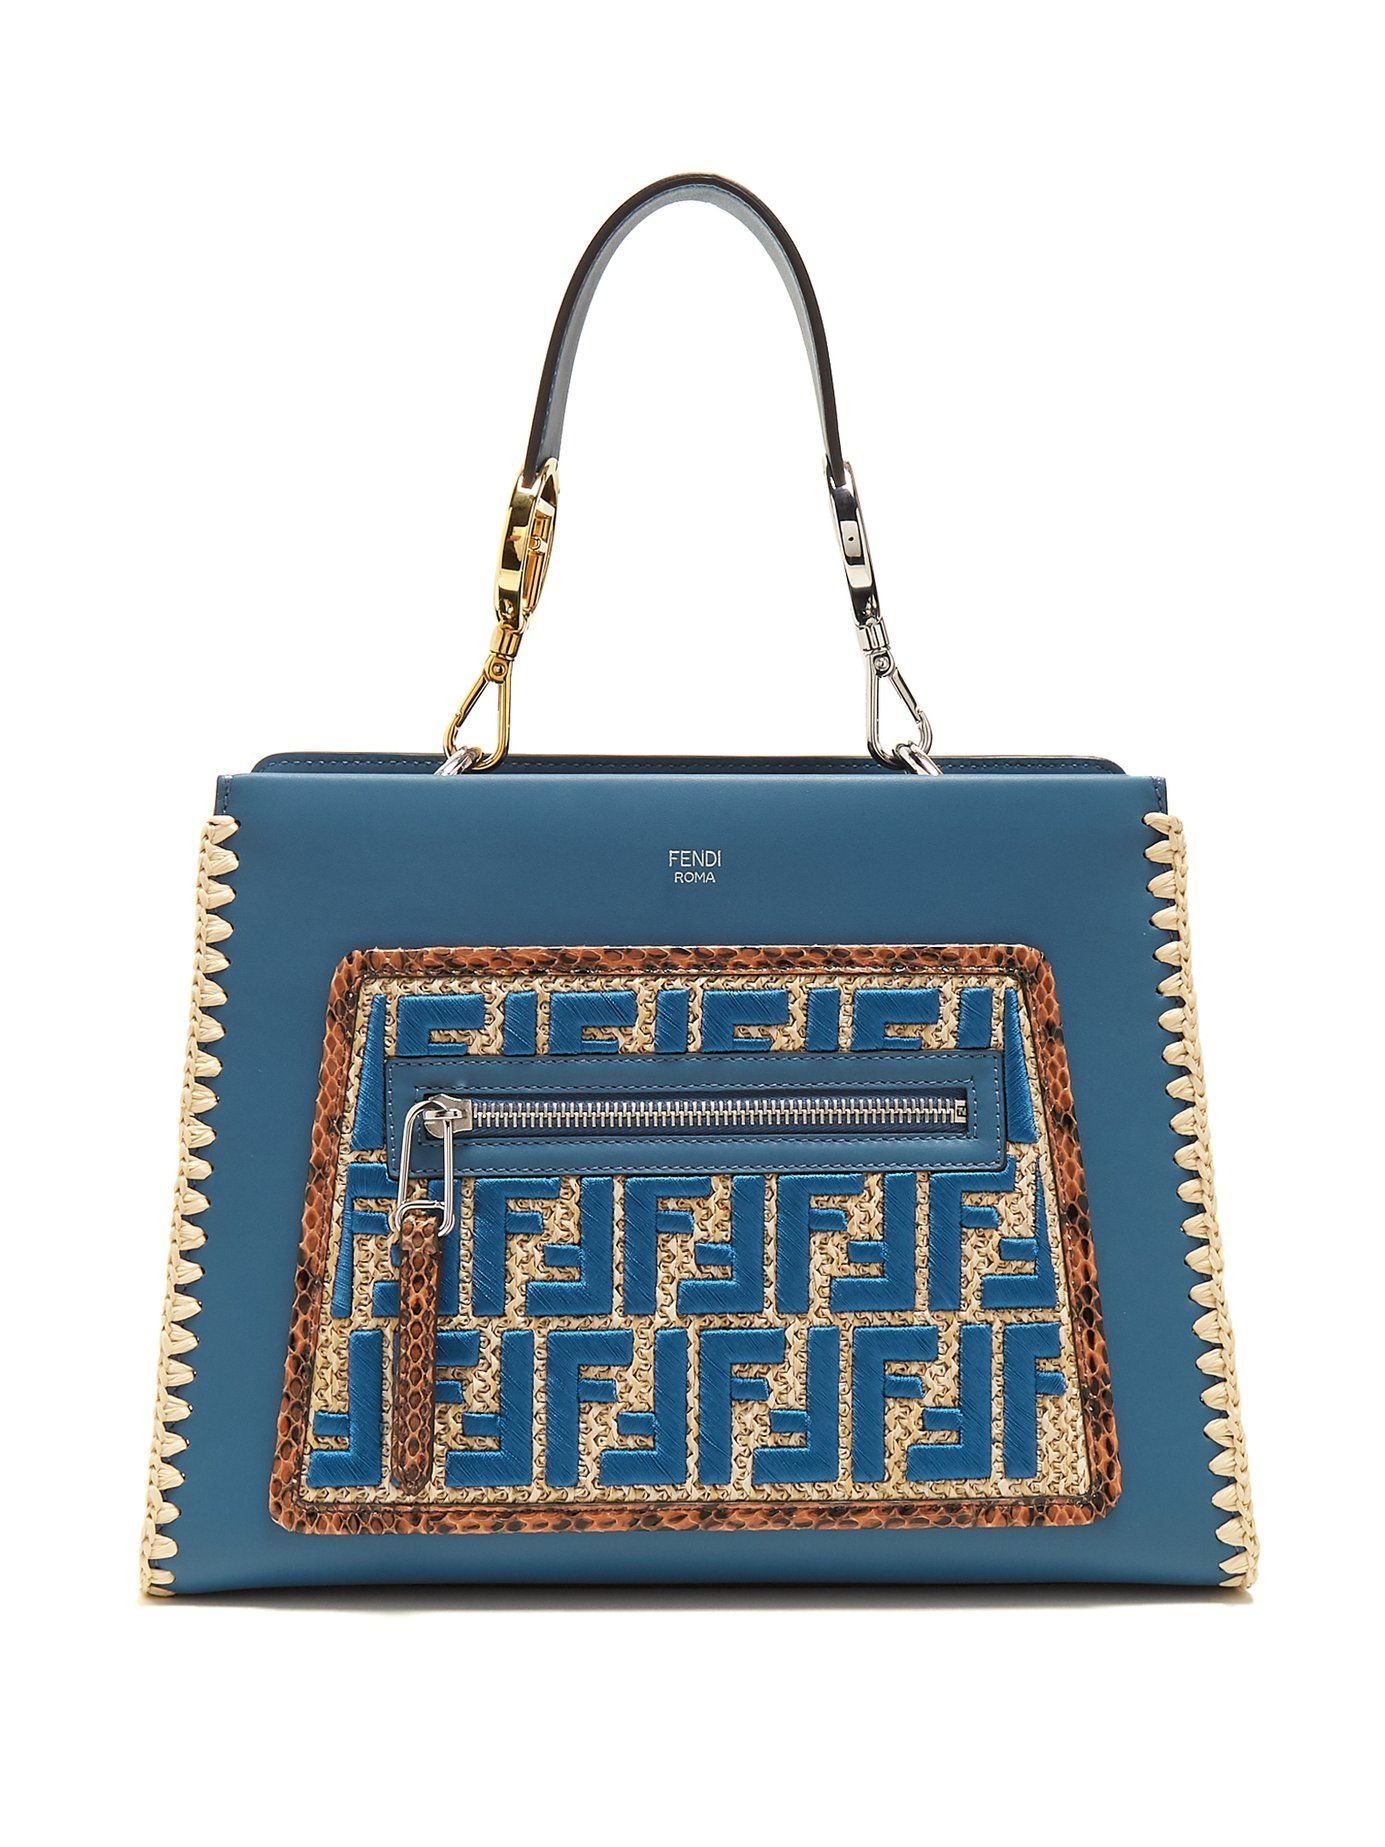 04d580440ad4 Click here to buy Fendi Runaway small snakeskin-trimmed leather bag at  MATCHESFASHION.COM